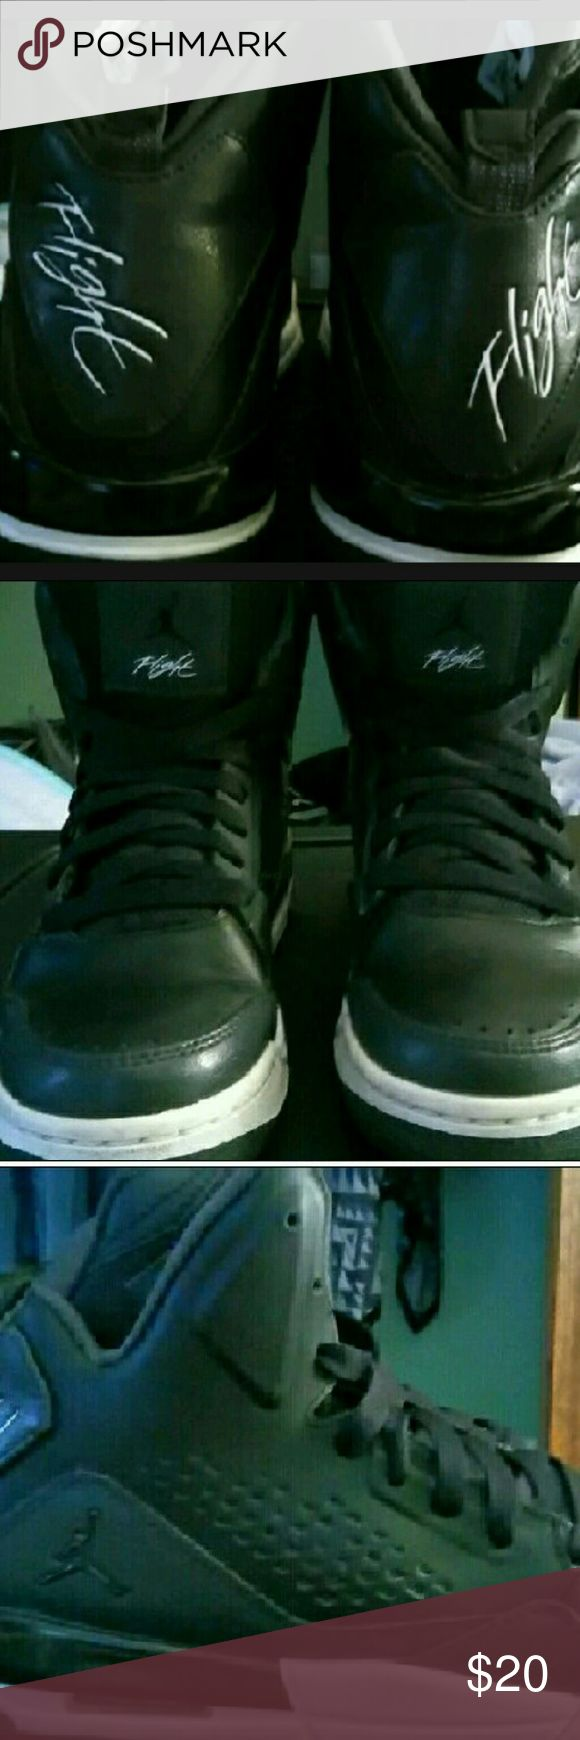 Jordan Flights Jordan Flights  (Black & White) authentic..in Size 6Y which is a Size 7.5  in Womens..and Size 6Y for Men which is a size 6 Jordan Shoes Athletic Shoes